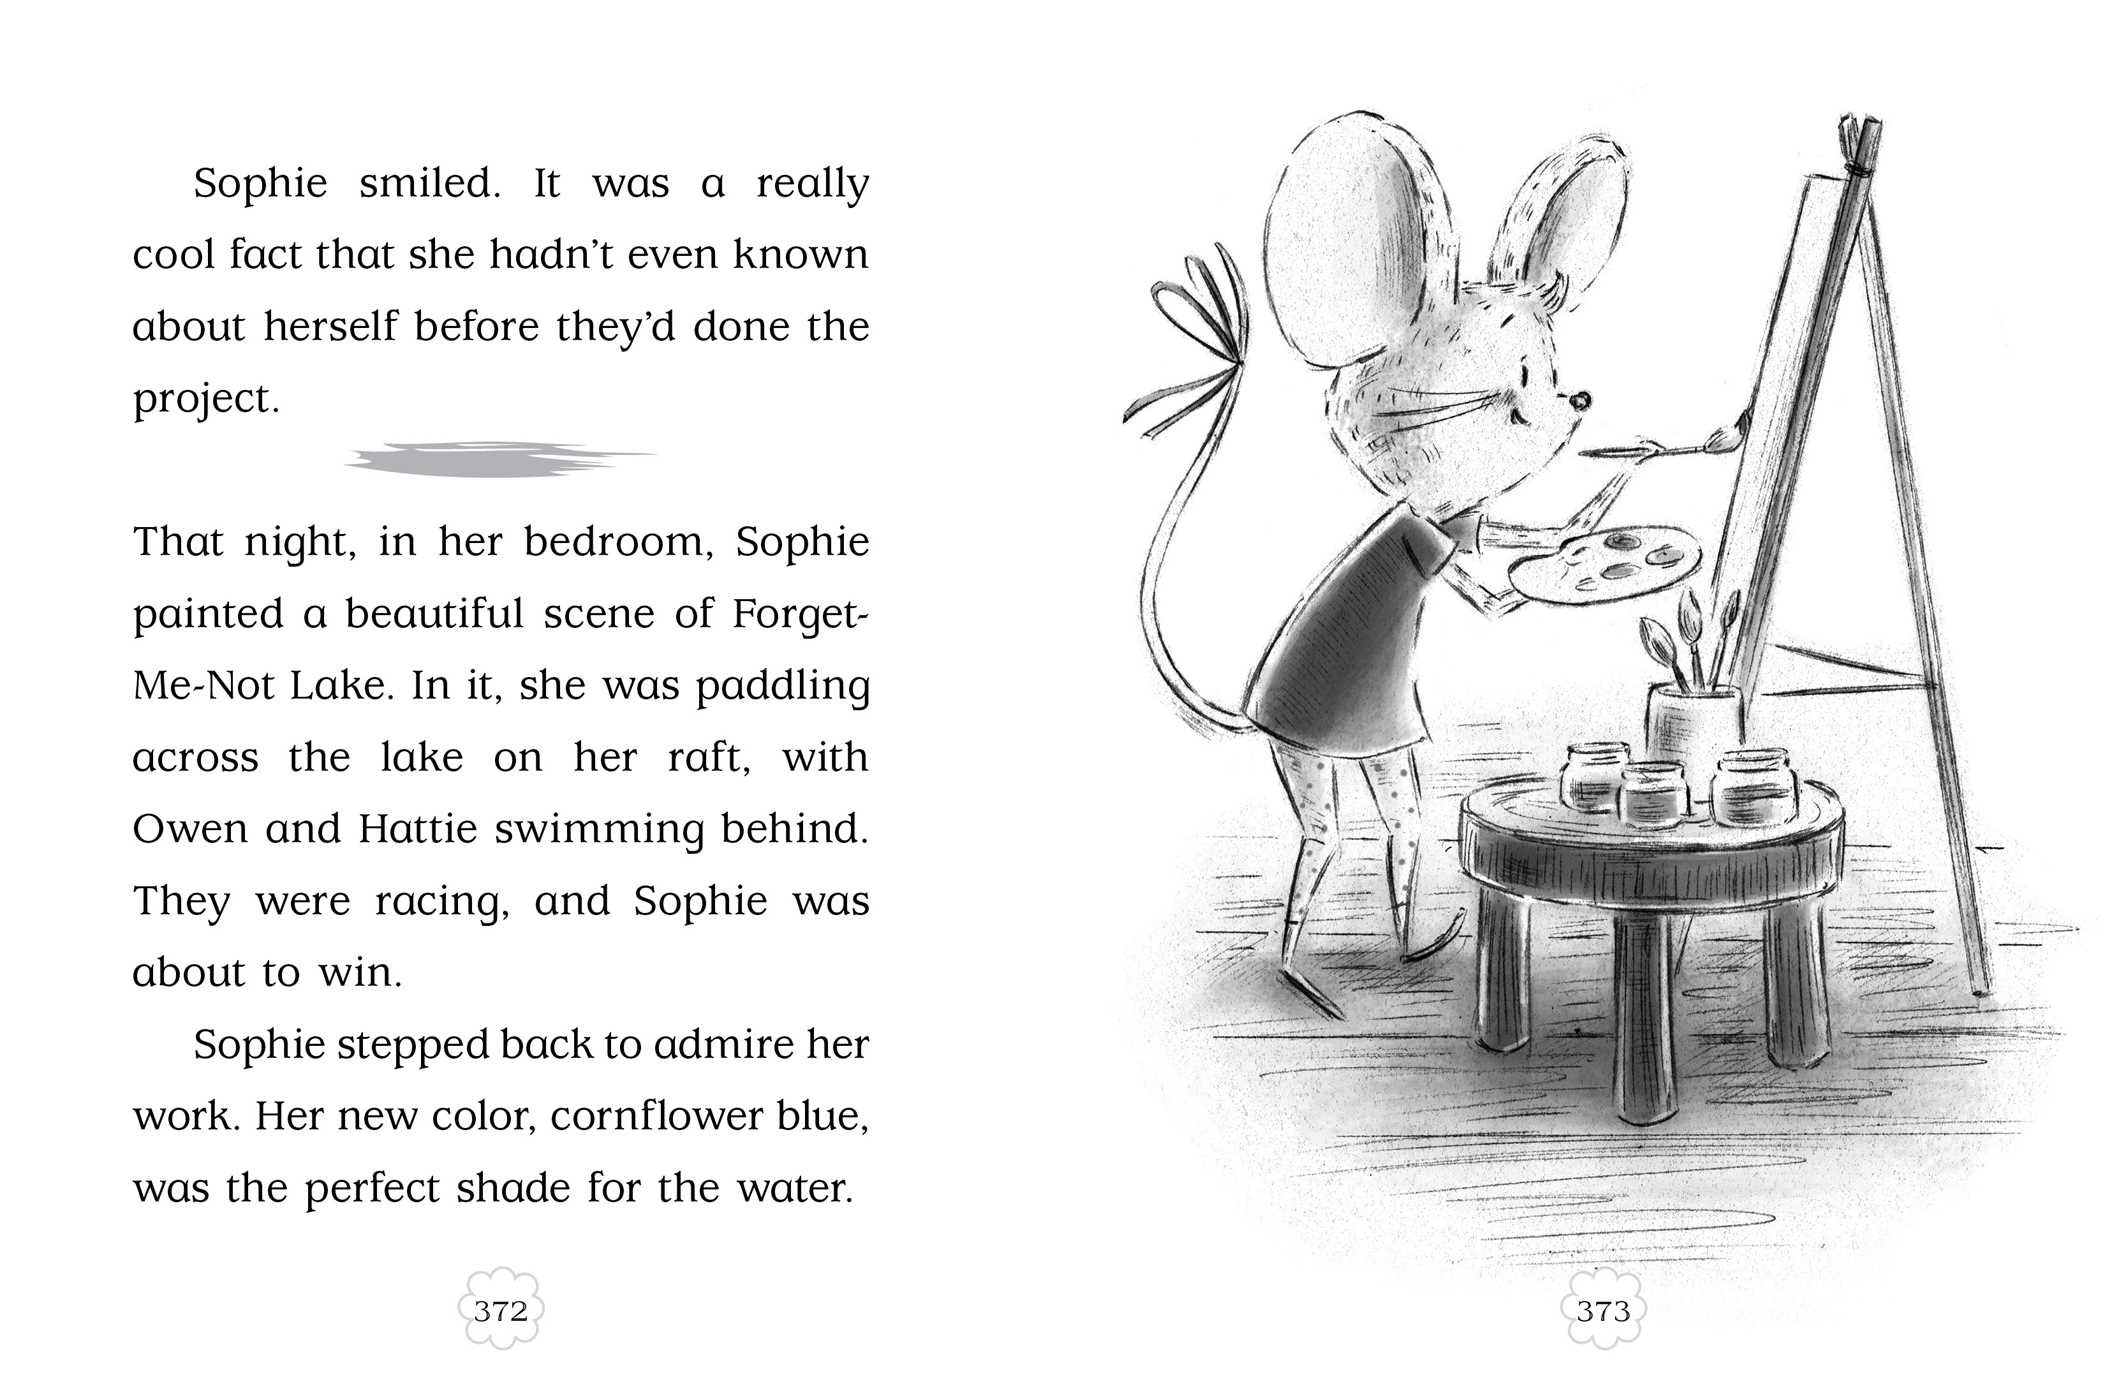 The adventures of sophie mouse 3 books in 1 9781481485241.in06